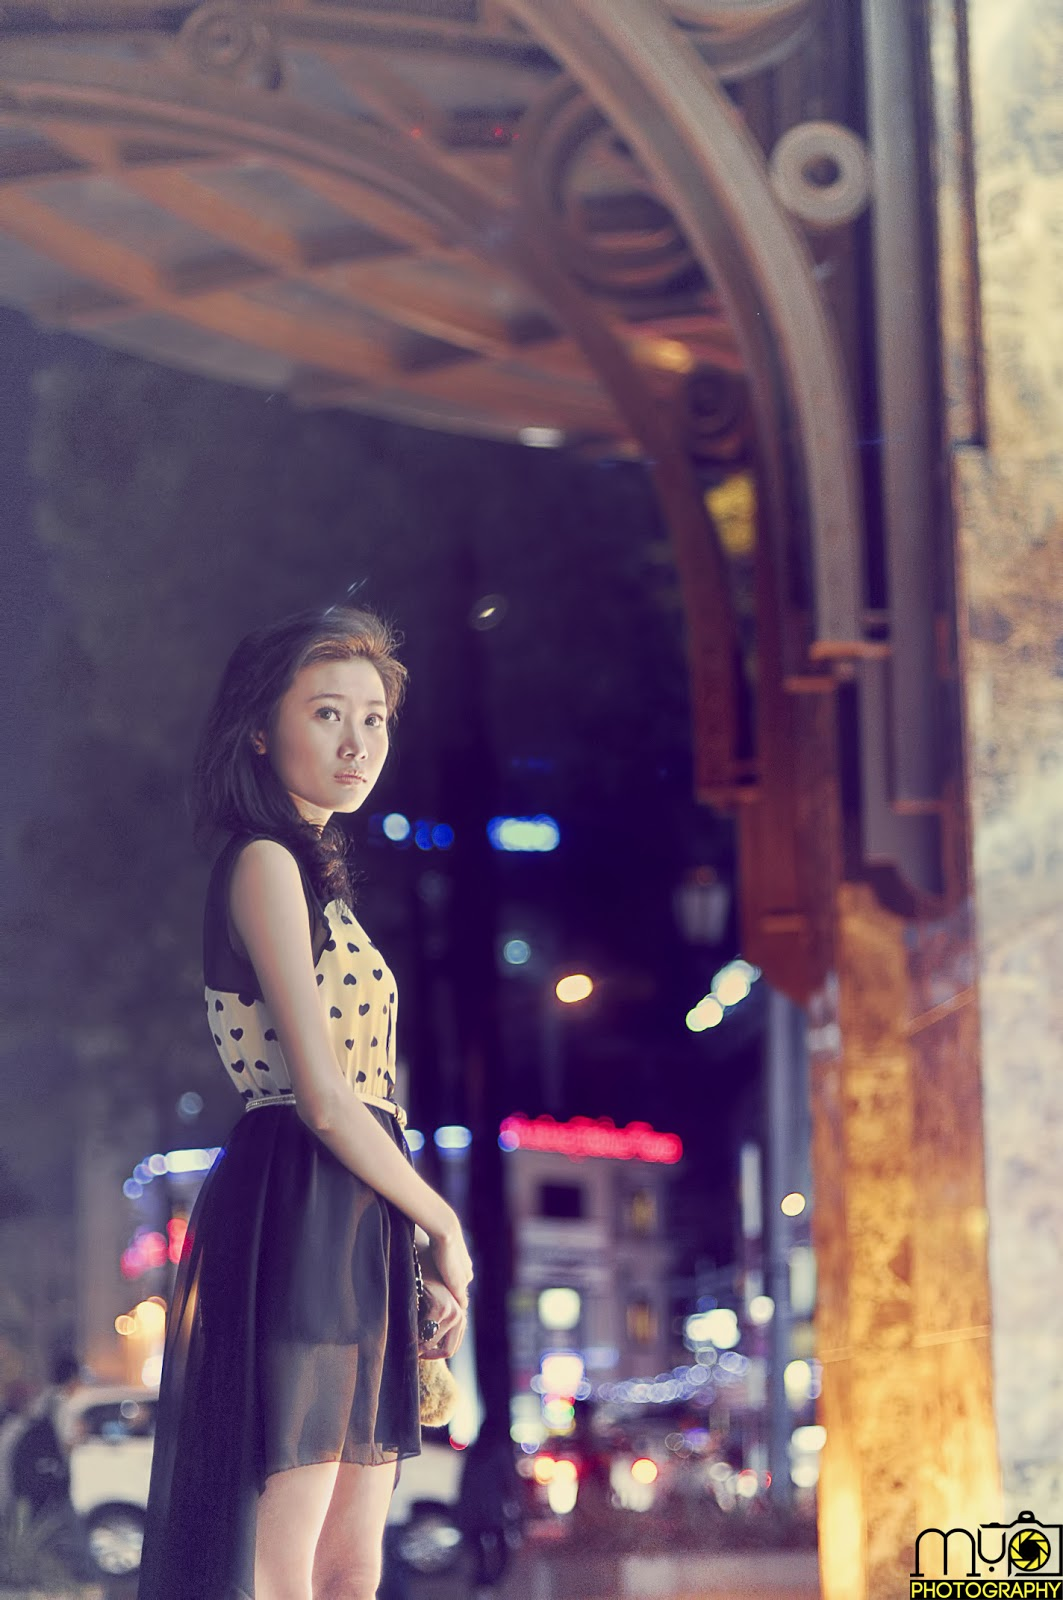 Vietnamese Beauty Girls by Mụp Photography (P3) 56 pics vietnamese girl pictures vietnam Mụp Photography